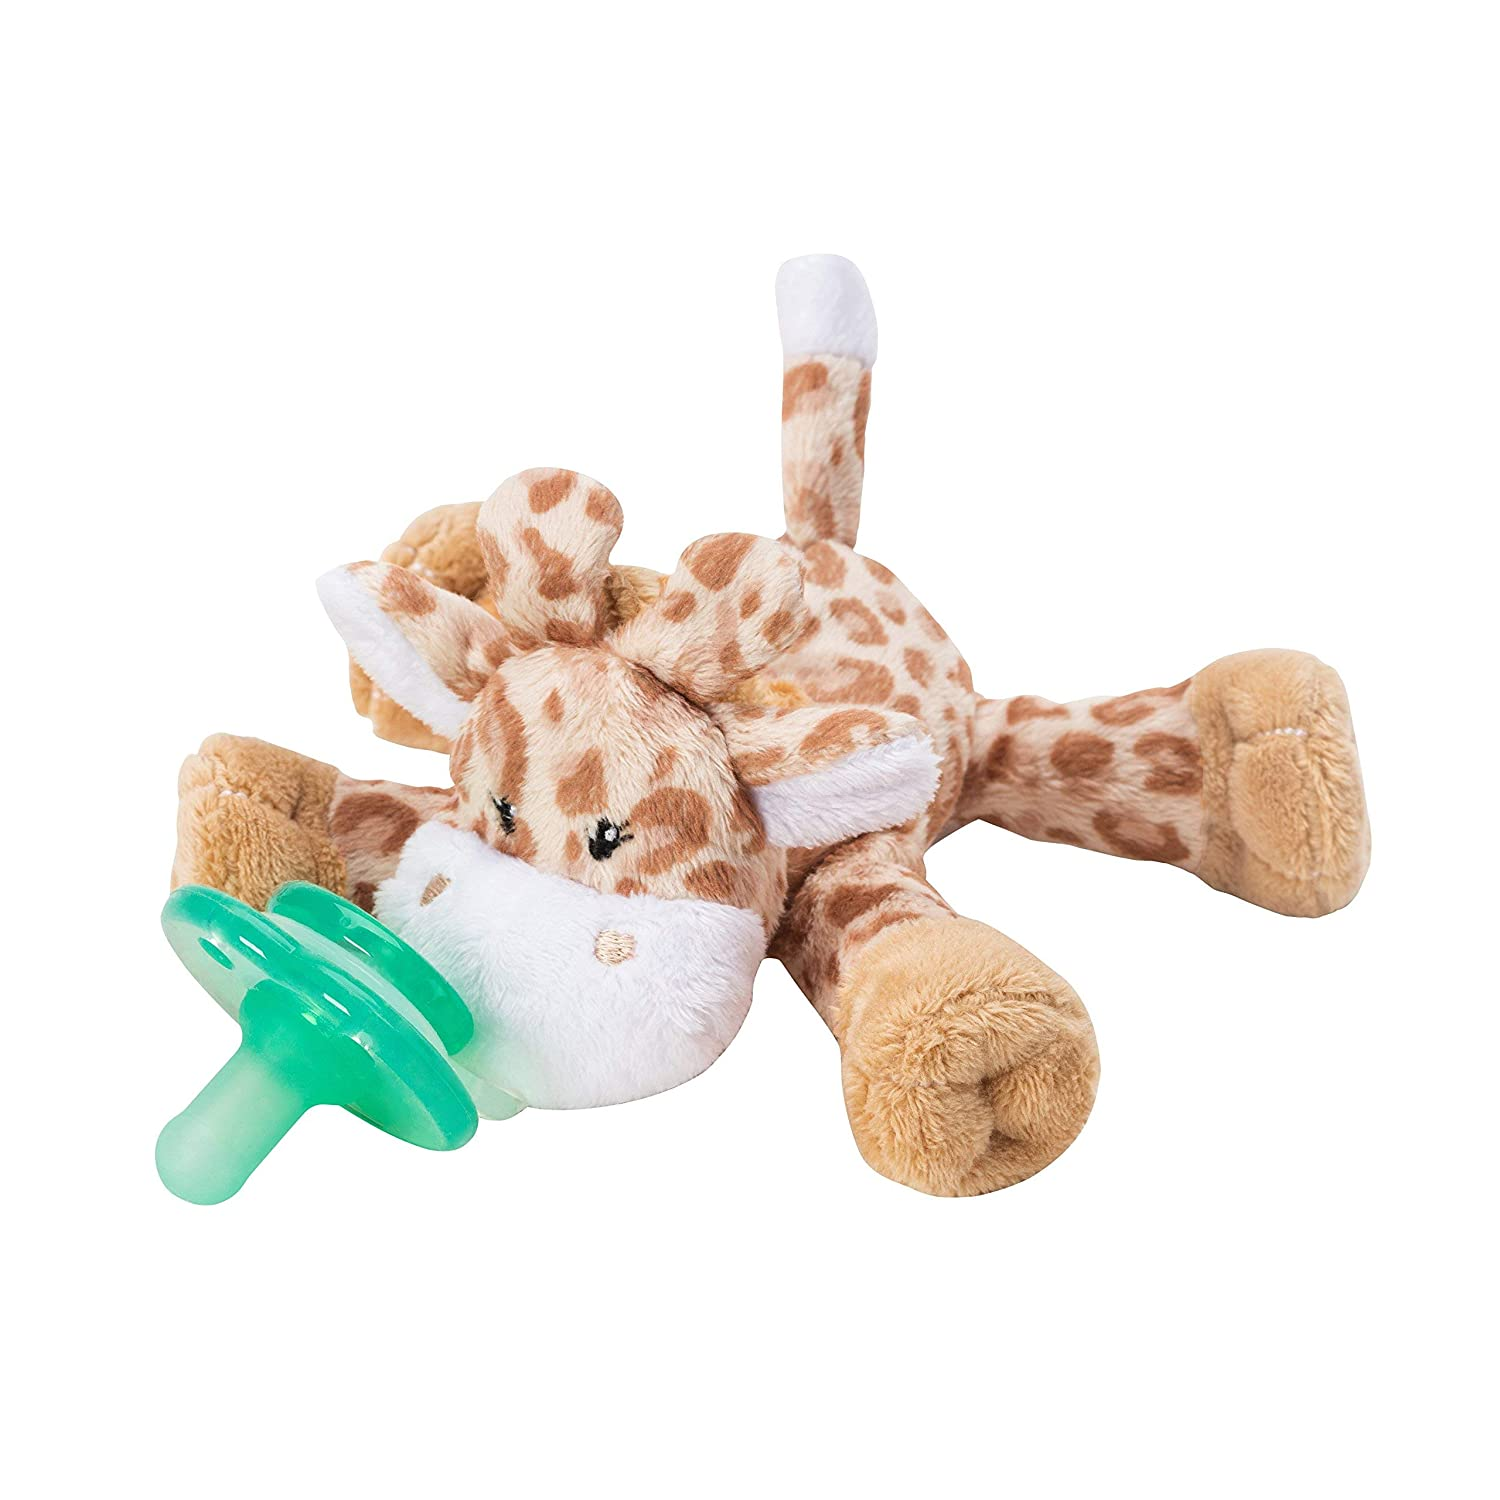 Amazon.com: nookums paci-plushies café jirafa Buddies ...